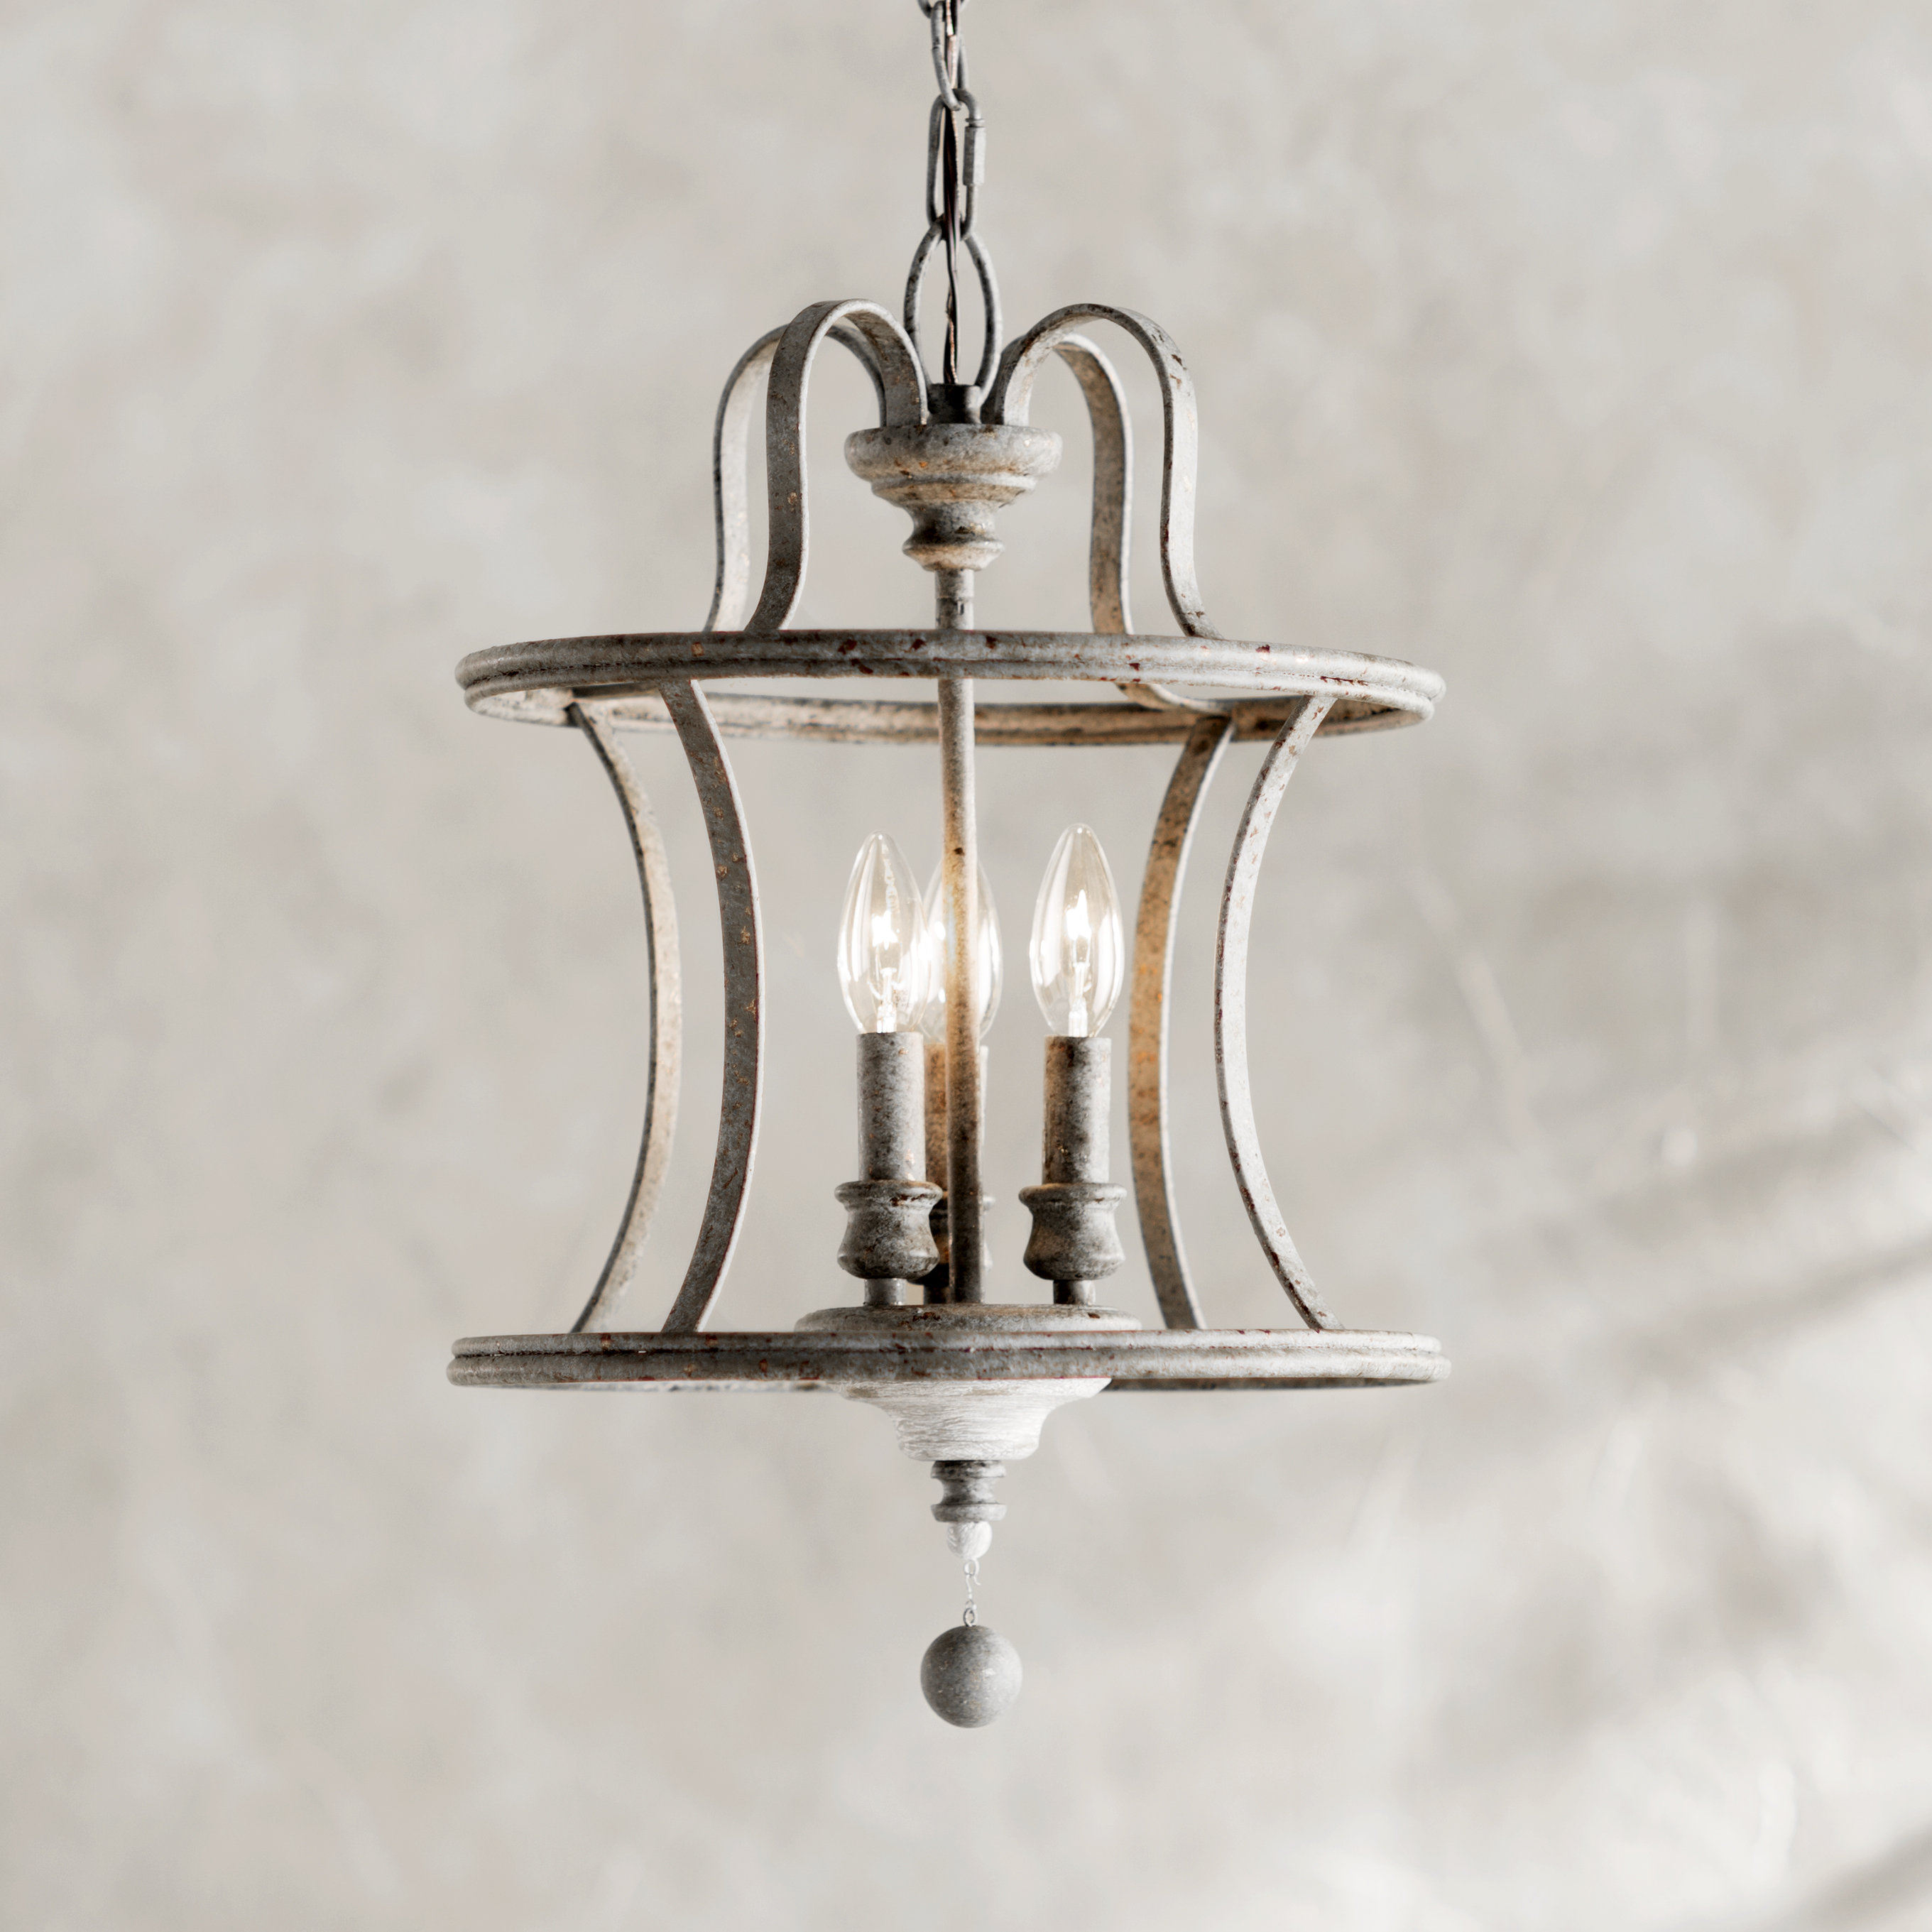 Farmhouse & Rustic Lark Manor Pendants | Birch Lane regarding Armande 3-Light Lantern Geometric Pendants (Image 18 of 30)